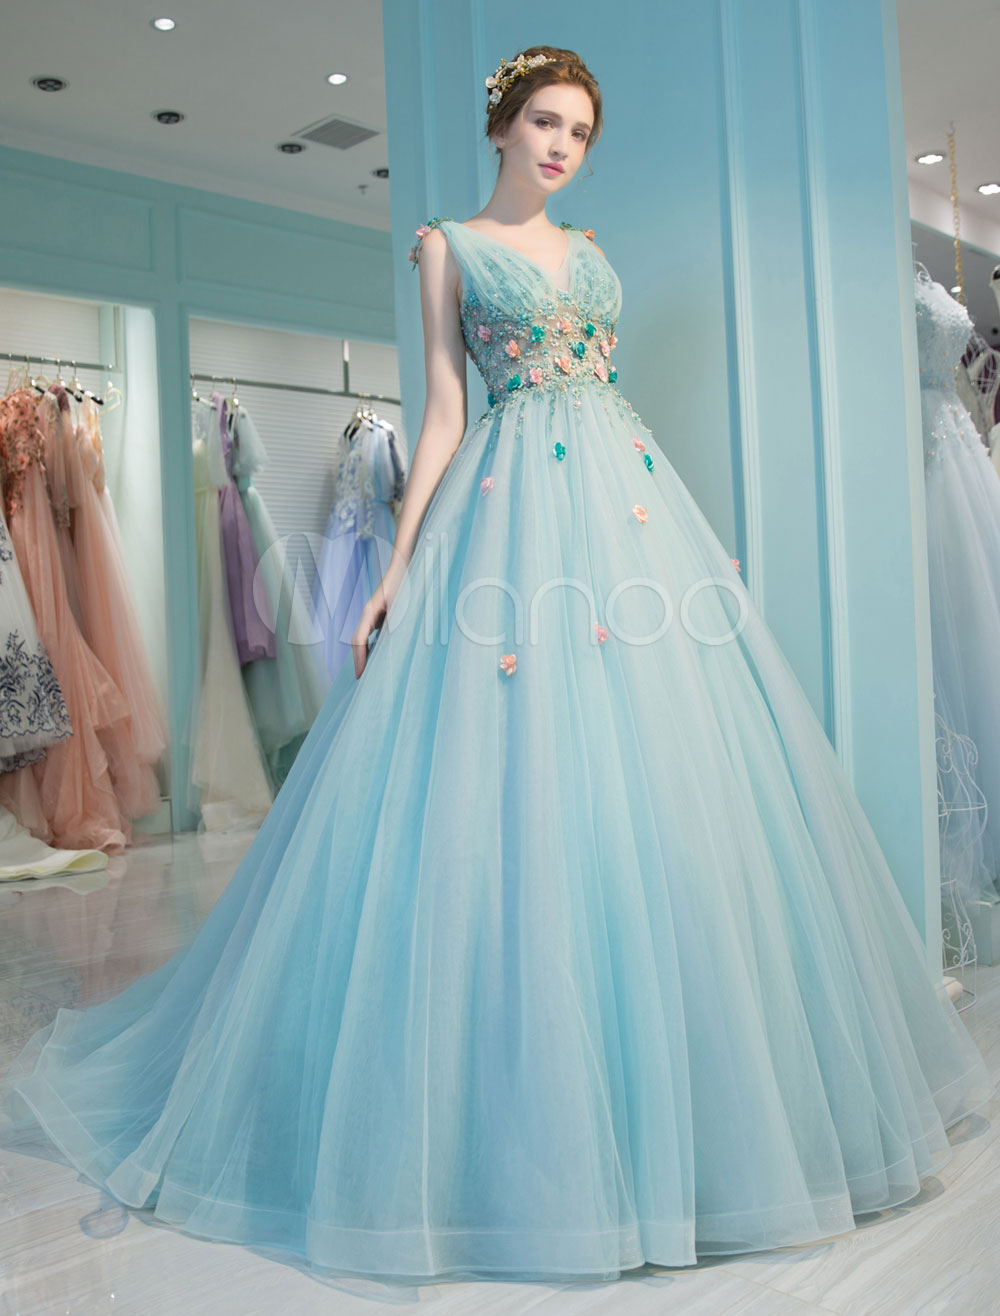 Princess Quinceanera Dresses Luxury Backless V Neck Flowers Illusion Teal Tulle Pageant Dresses With Train